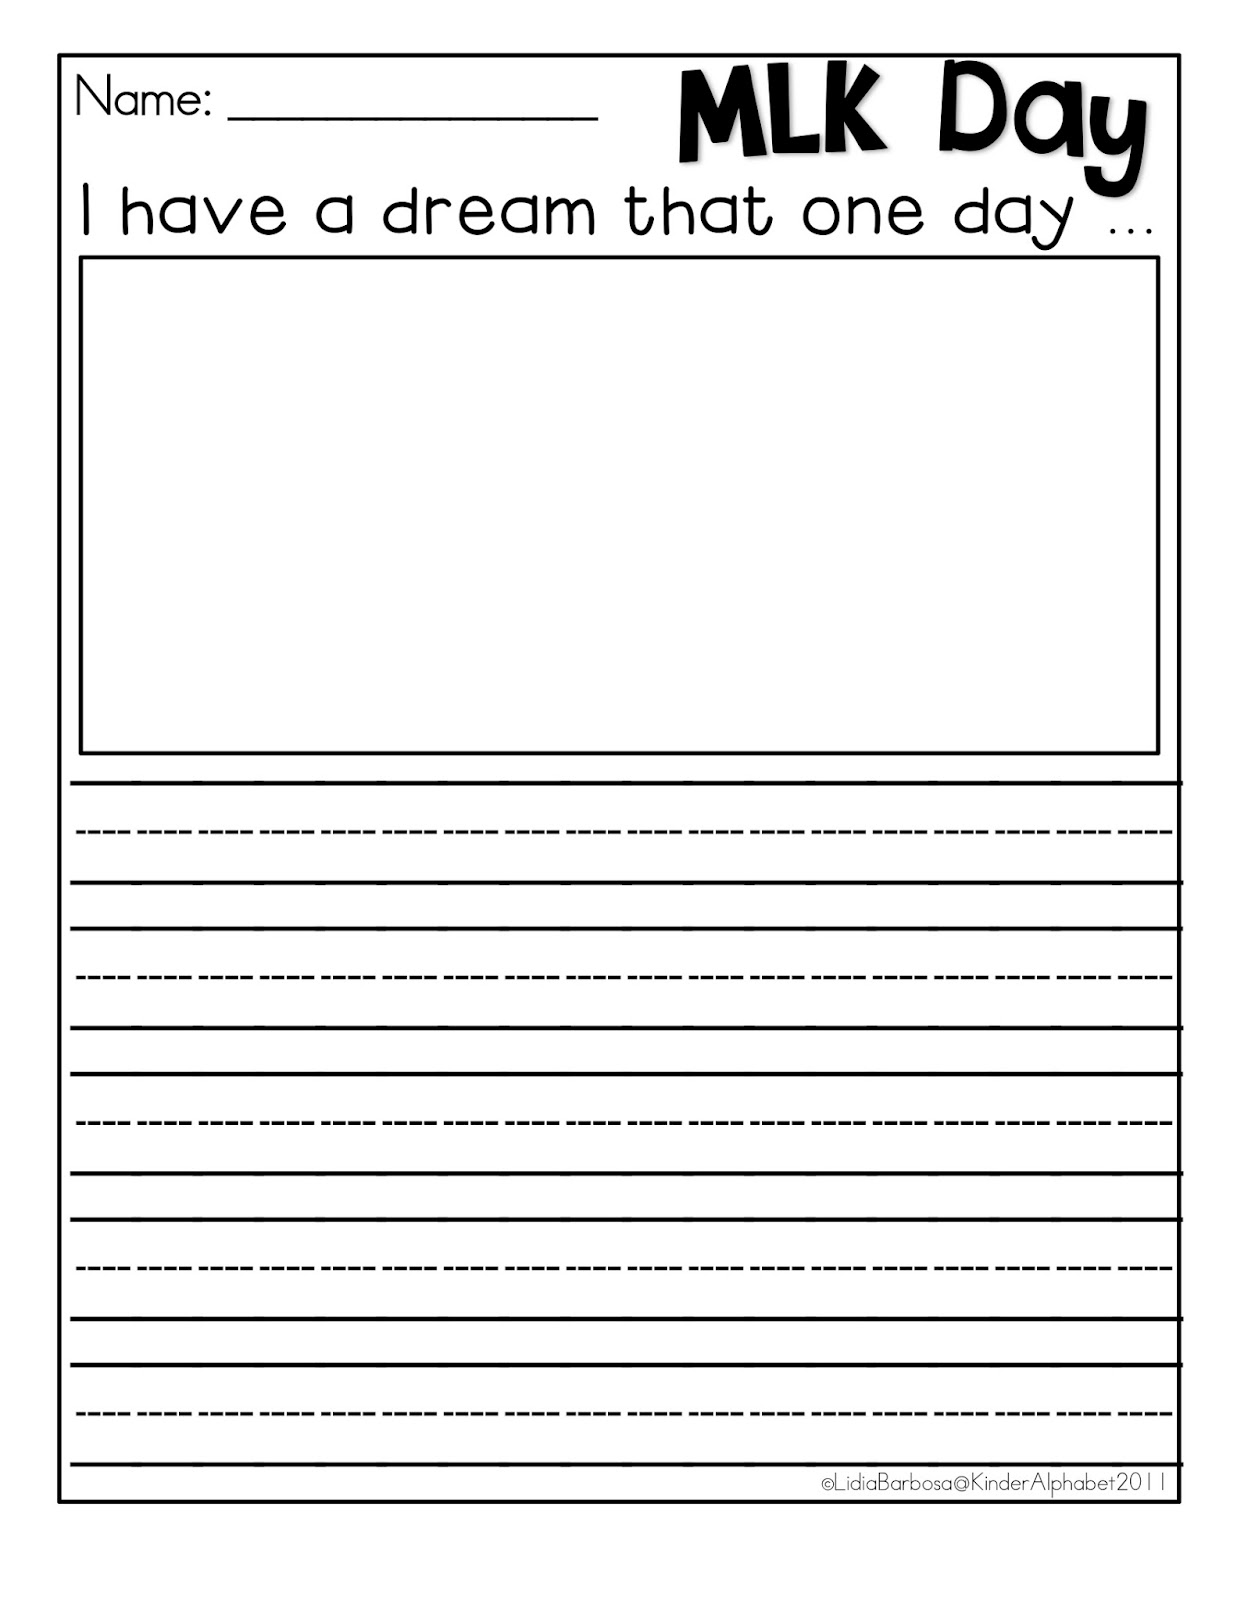 I Have a Dream | Worksheet | Education.com